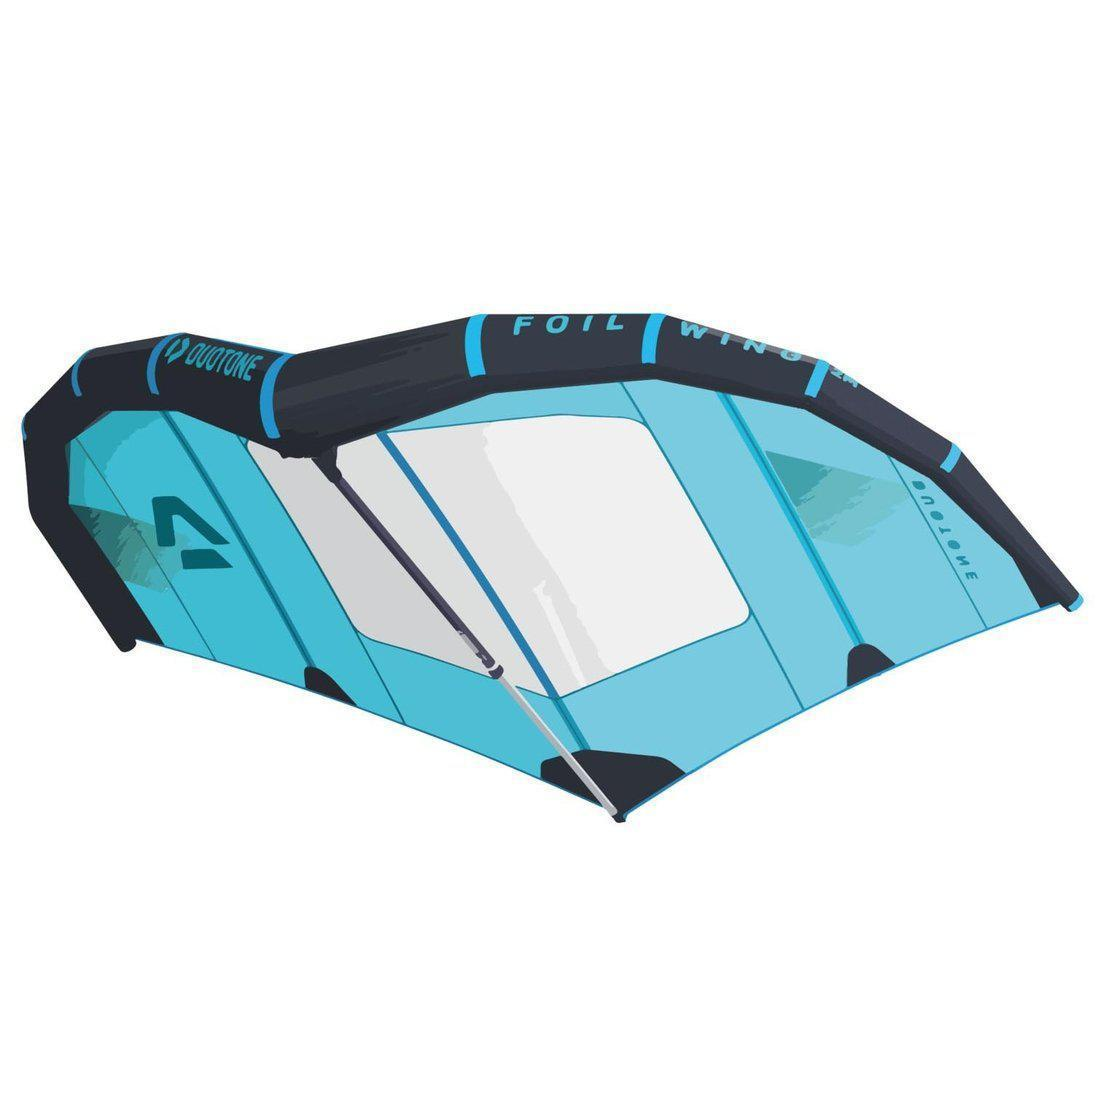 Fanatic Sky SUP Foil Wing Foiling Package-Big Winds